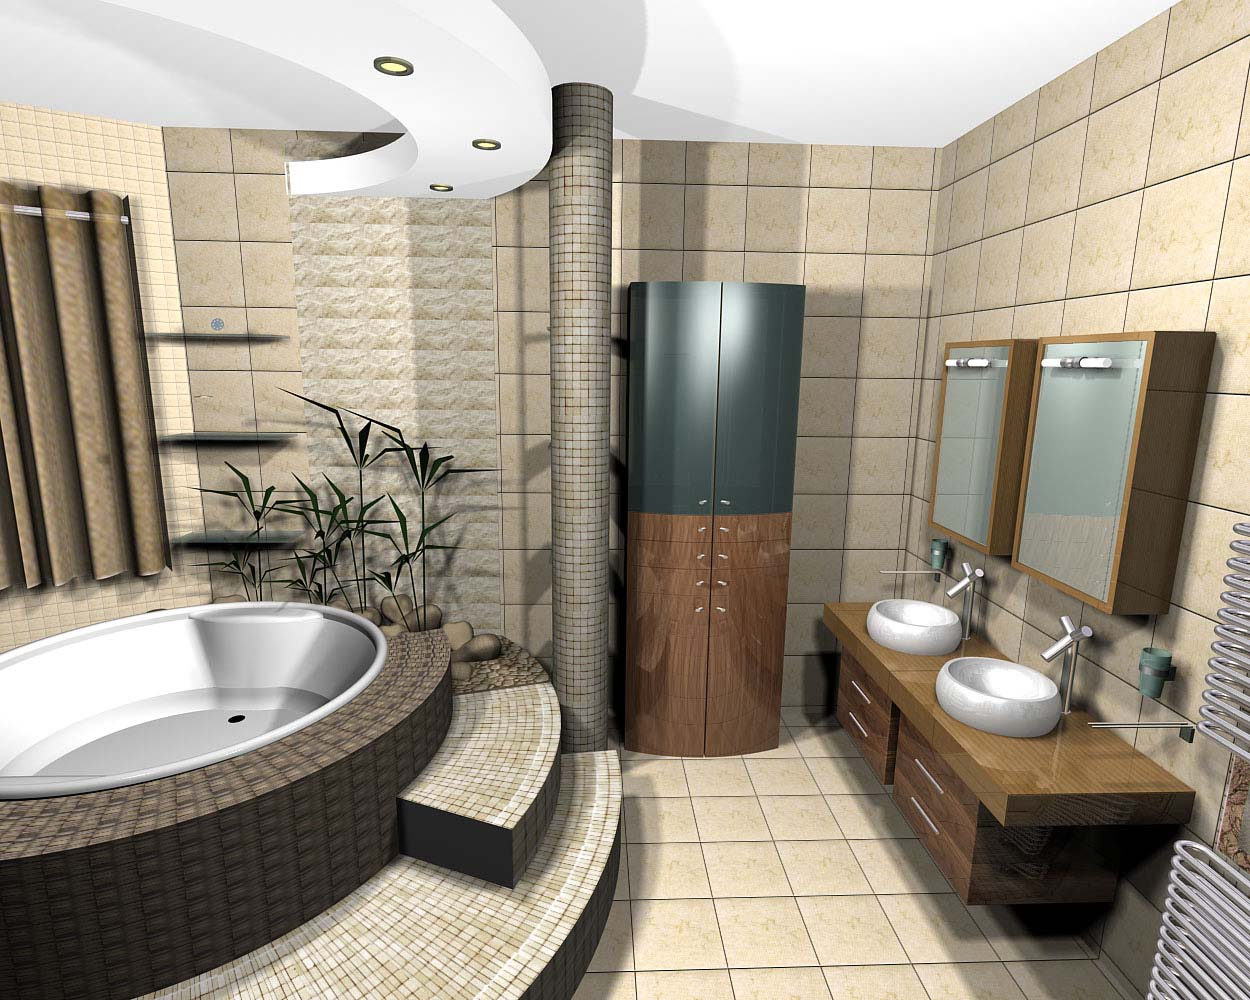 Good-Interior-Design-and-Room-with-bath-and-also-with-the-counter-for-the-sink-and-mirror-Bathroom-Design-Ideas-Furniture